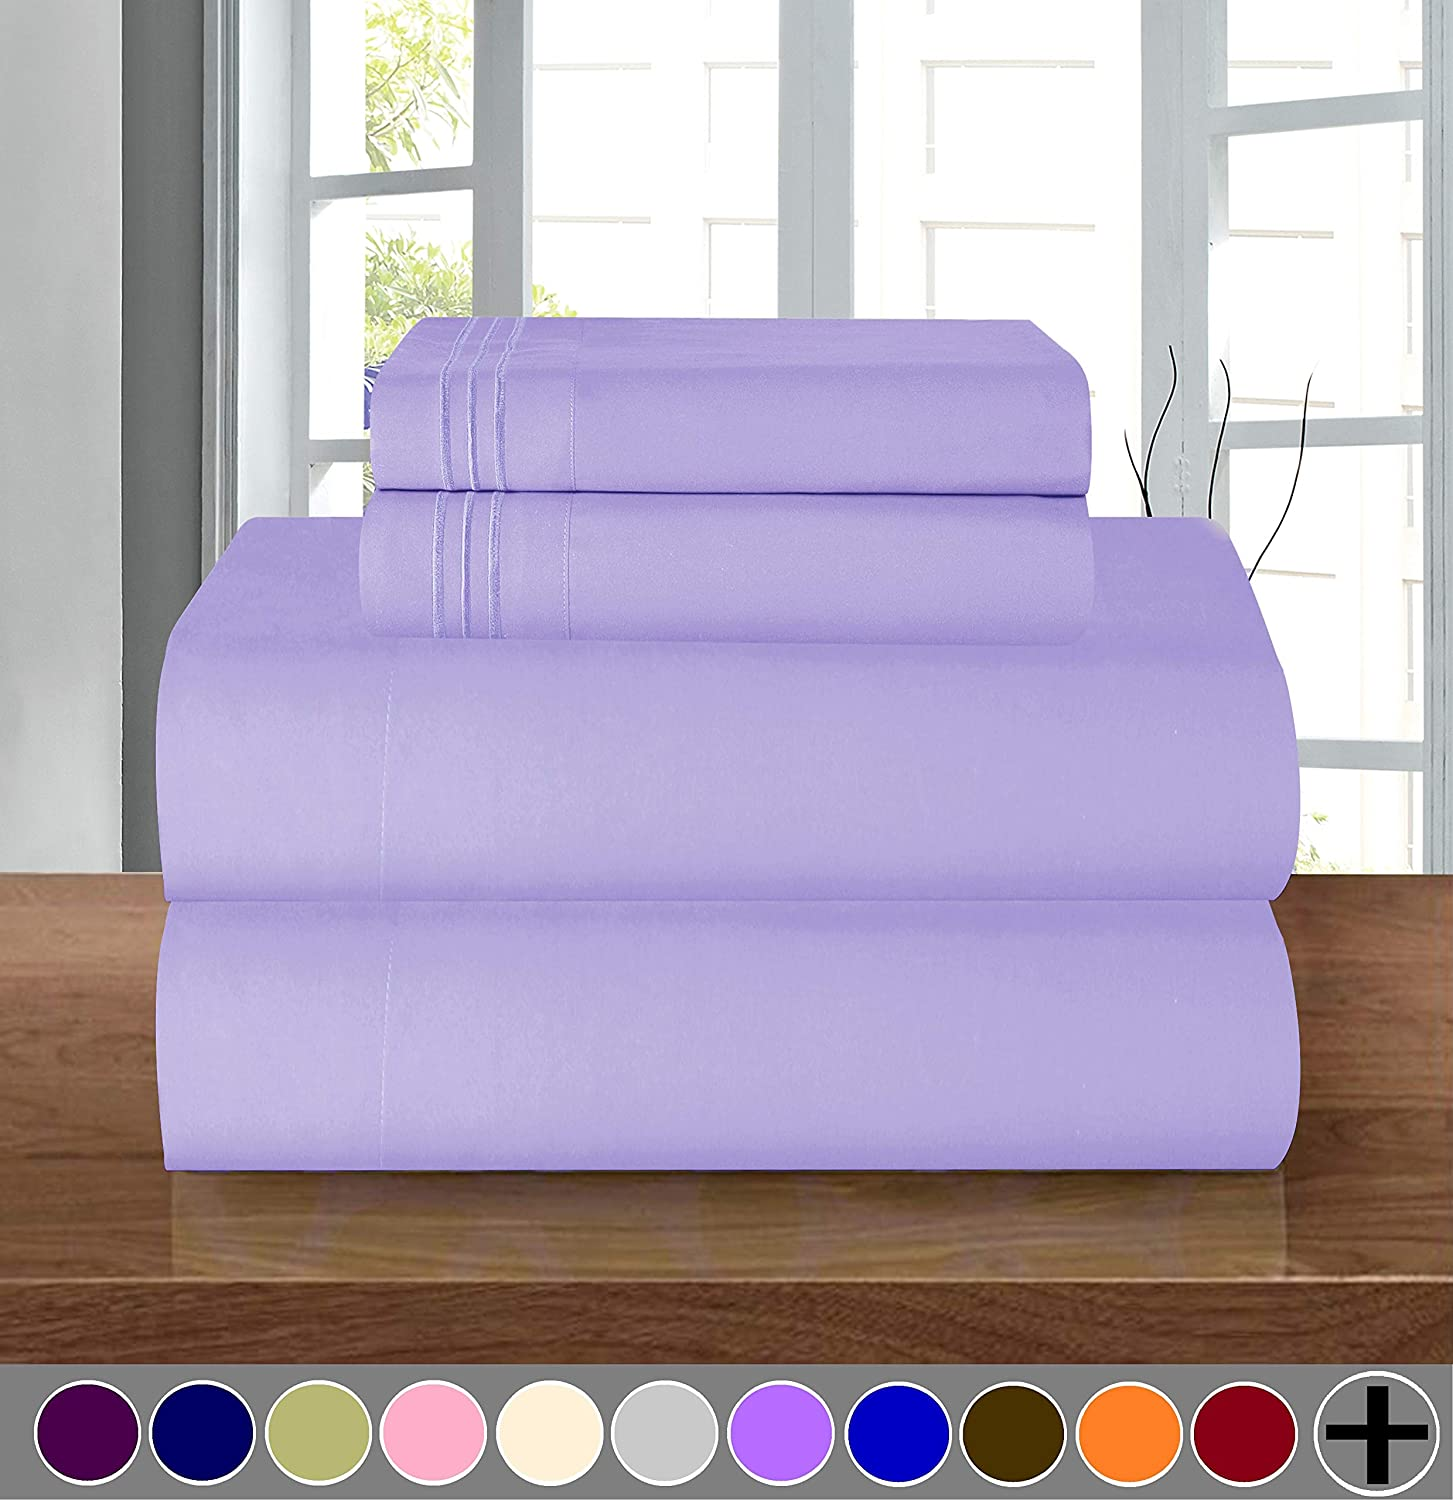 Elegant Comfort Luxury Soft 1500 Thread Count Egyptian Quality 3-Piece Sheet Wrinkle and Fade Resistant Bedding Set, Deep Pocket up to 16inch, Twin/Twin XL, Lavender